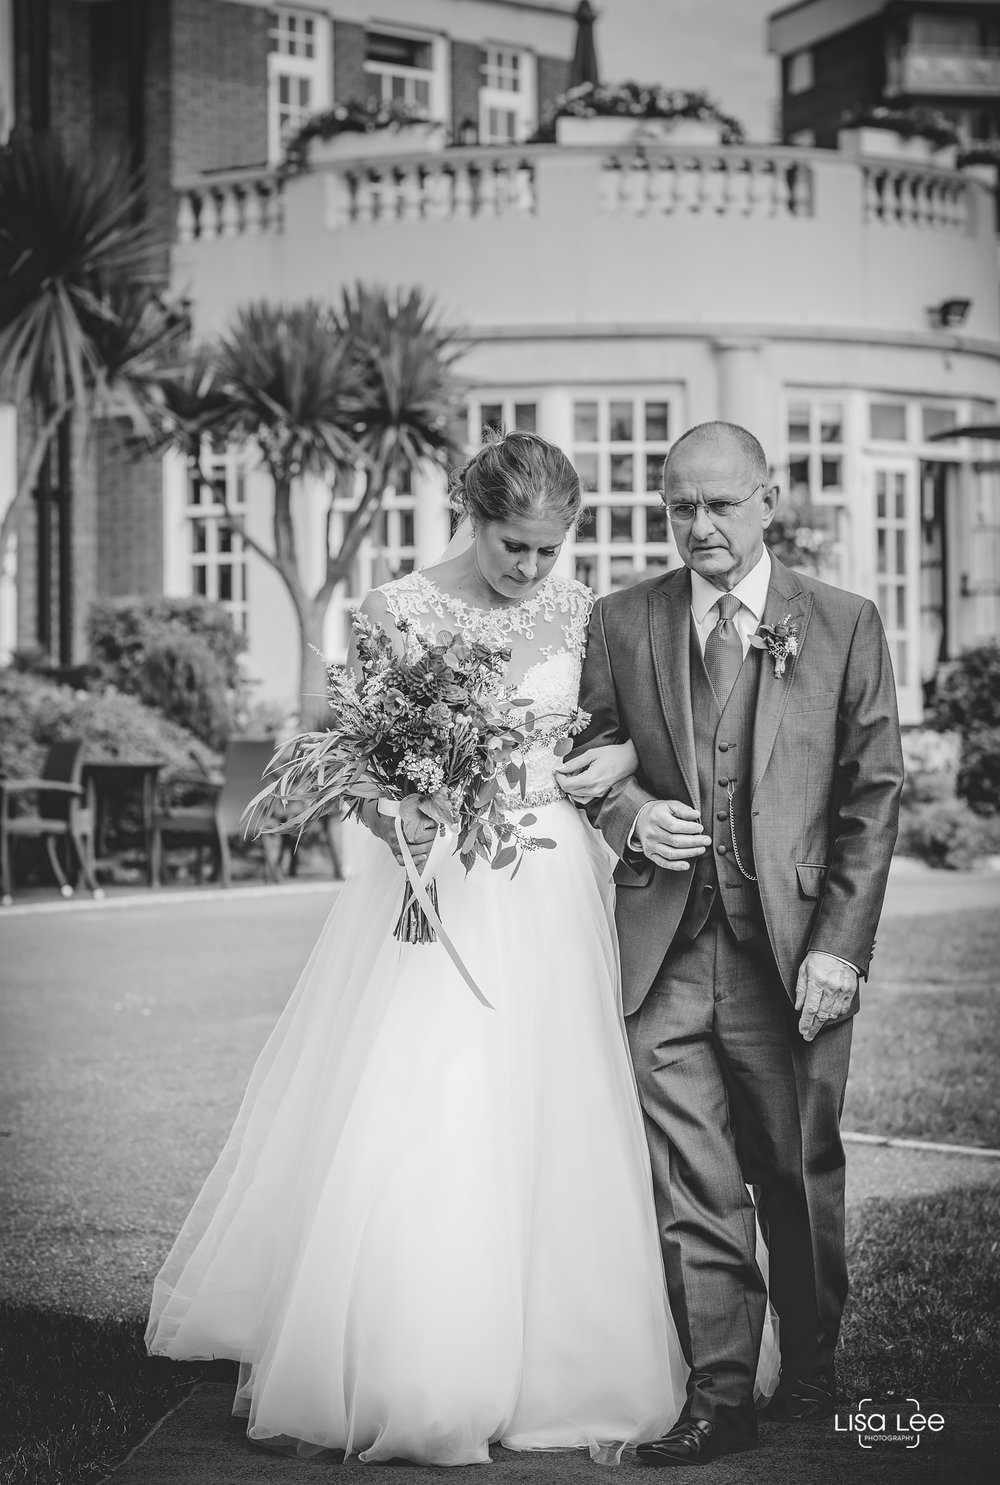 Lisa-Lee-Creative-Documentary-Wedding-Photography-Miramar-Hotel-Dorset-13.jpg